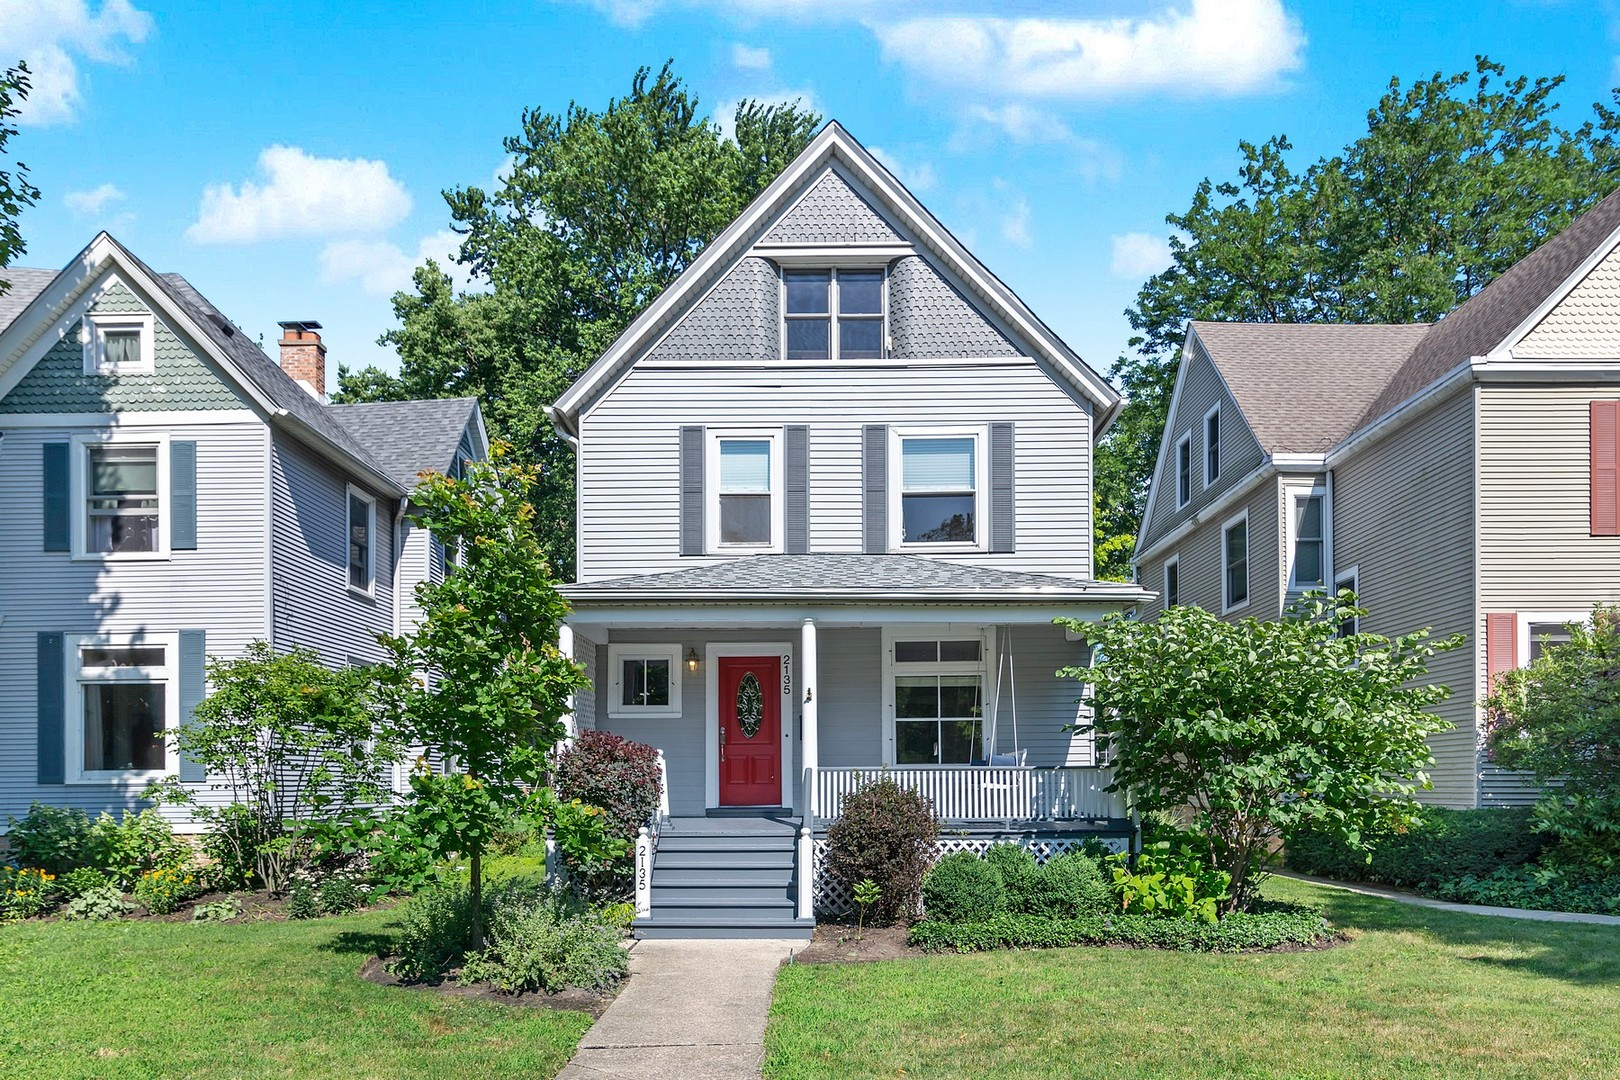 2135 Sherman Avenue 60201 - One of Evanston Homes for Sale